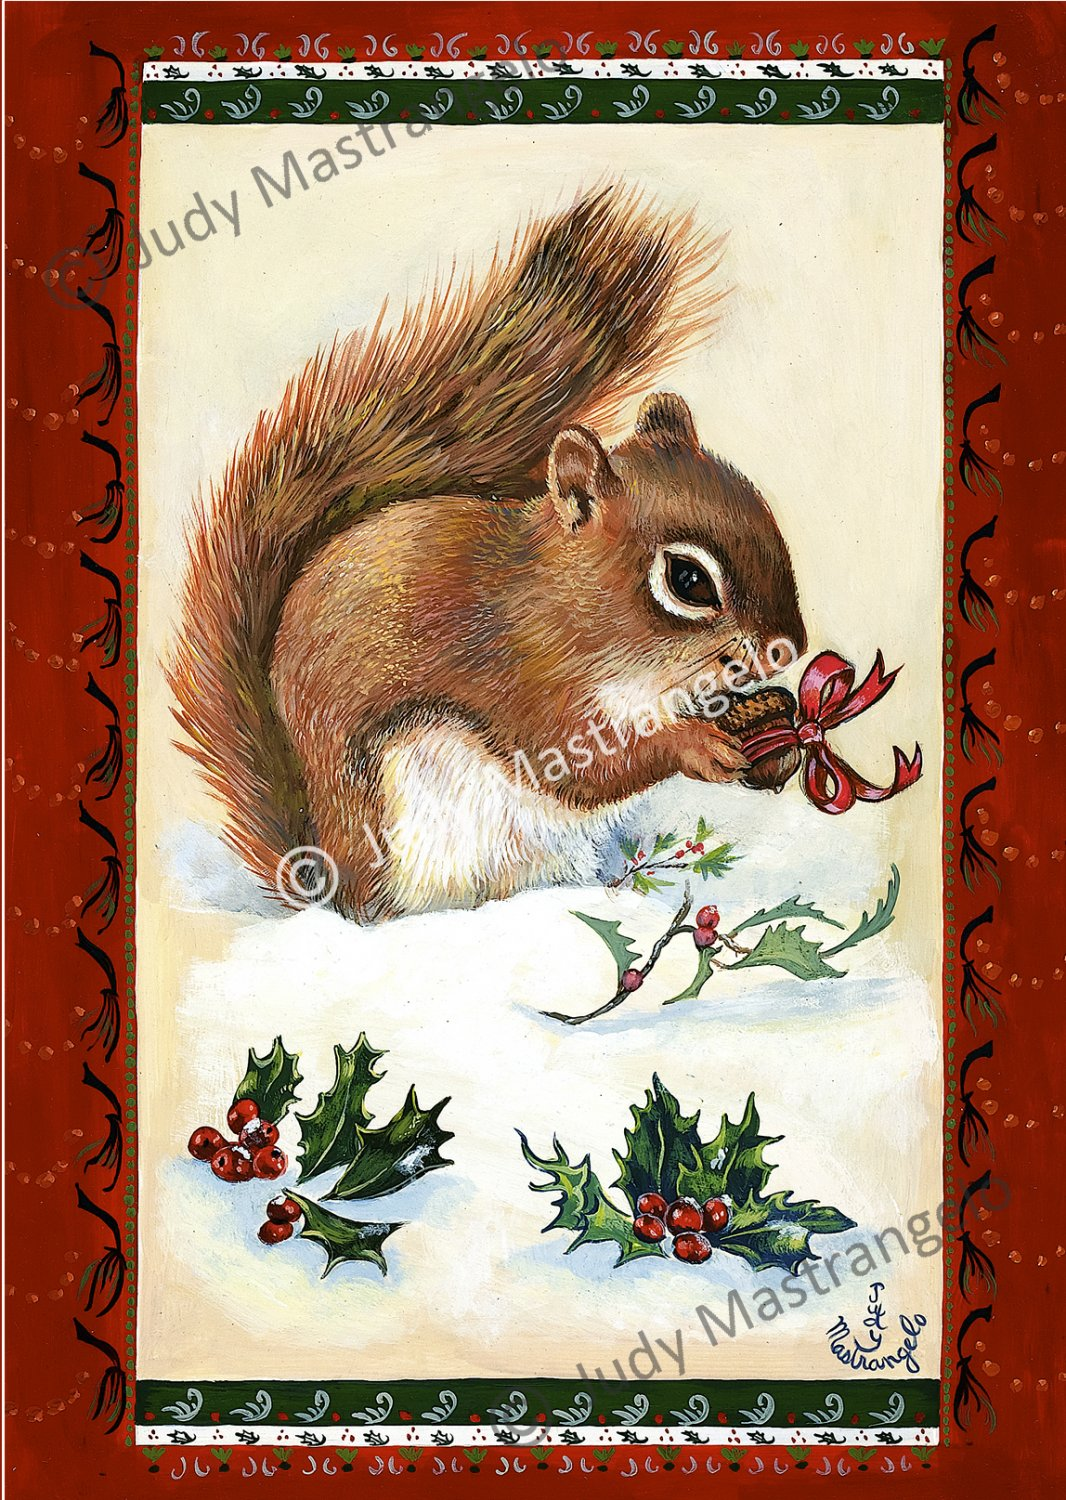 Squirrels Christmas Gift 12 X 8 FINE ART CANVAS FRAMED PRINT